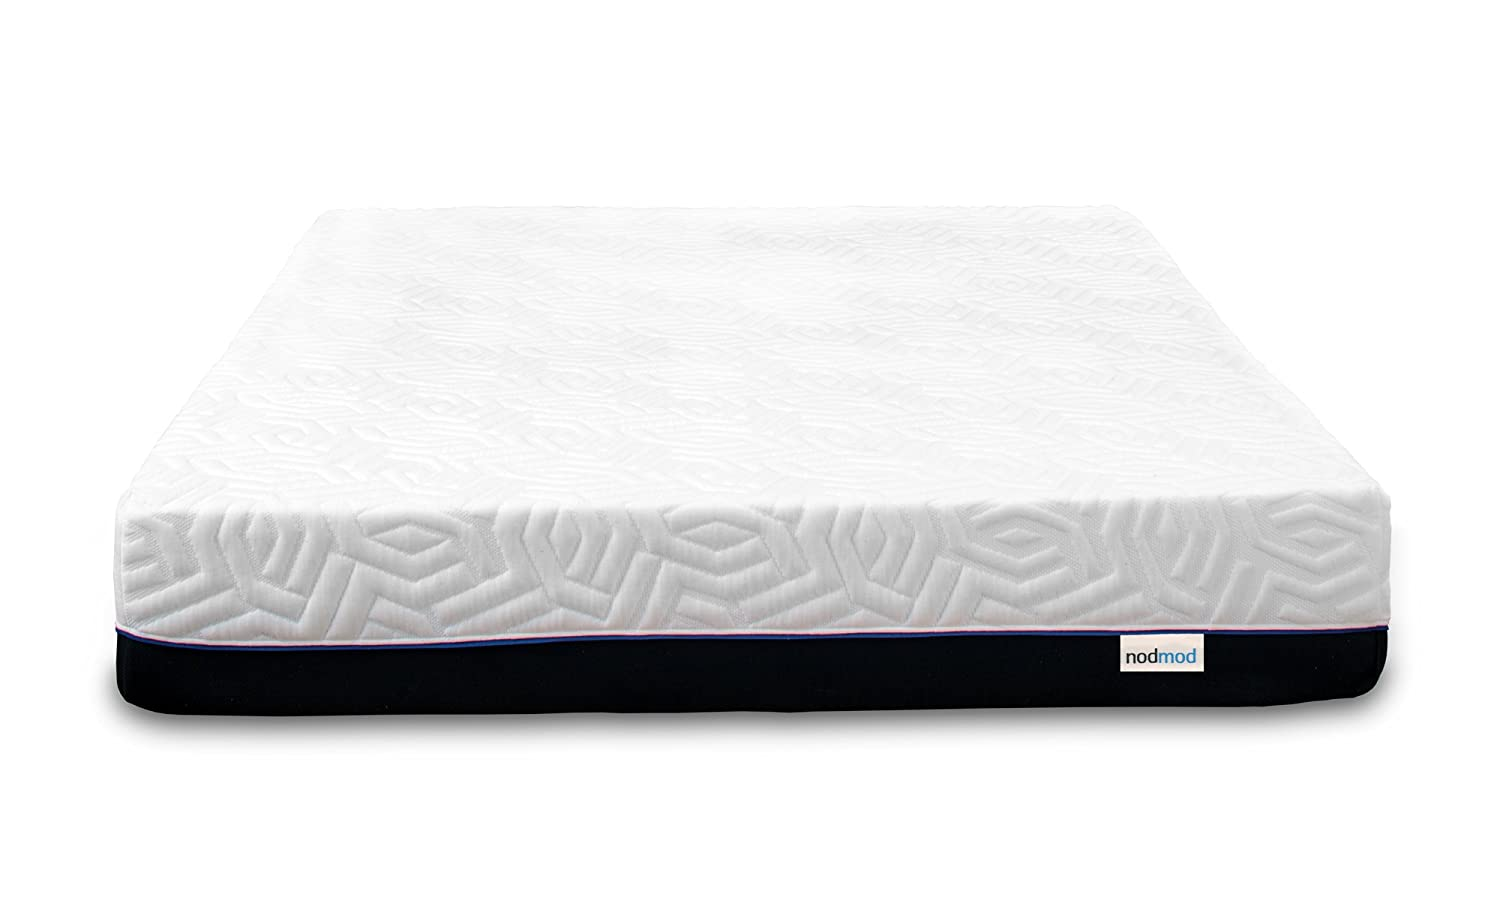 NodMod Mattresses Queen 100 Made in USA 10-inch Cooling Memory Foam Mattress